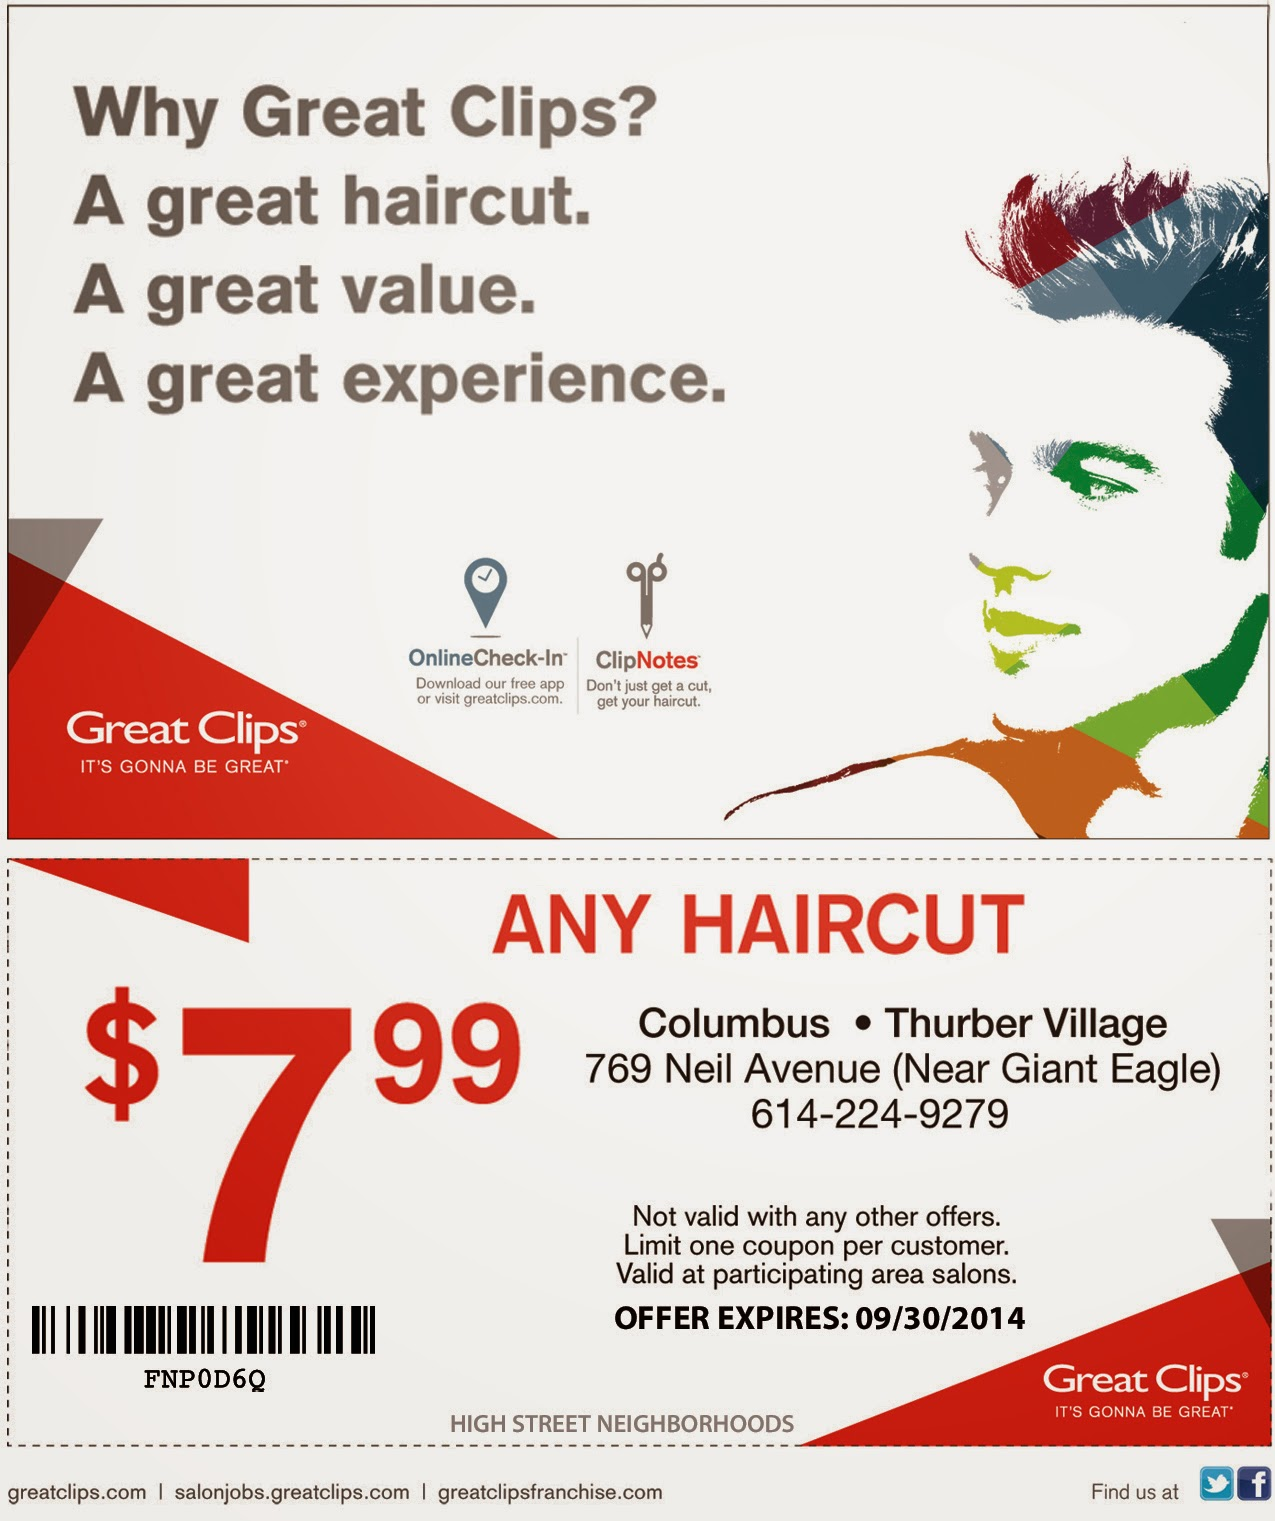 haircut coupons near me haircut coupons 2018 me wavy haircut 1723 | Great%2BClips%2Bprintable%2Bcoupon%2Bonline%2Bjanuary%2B2015